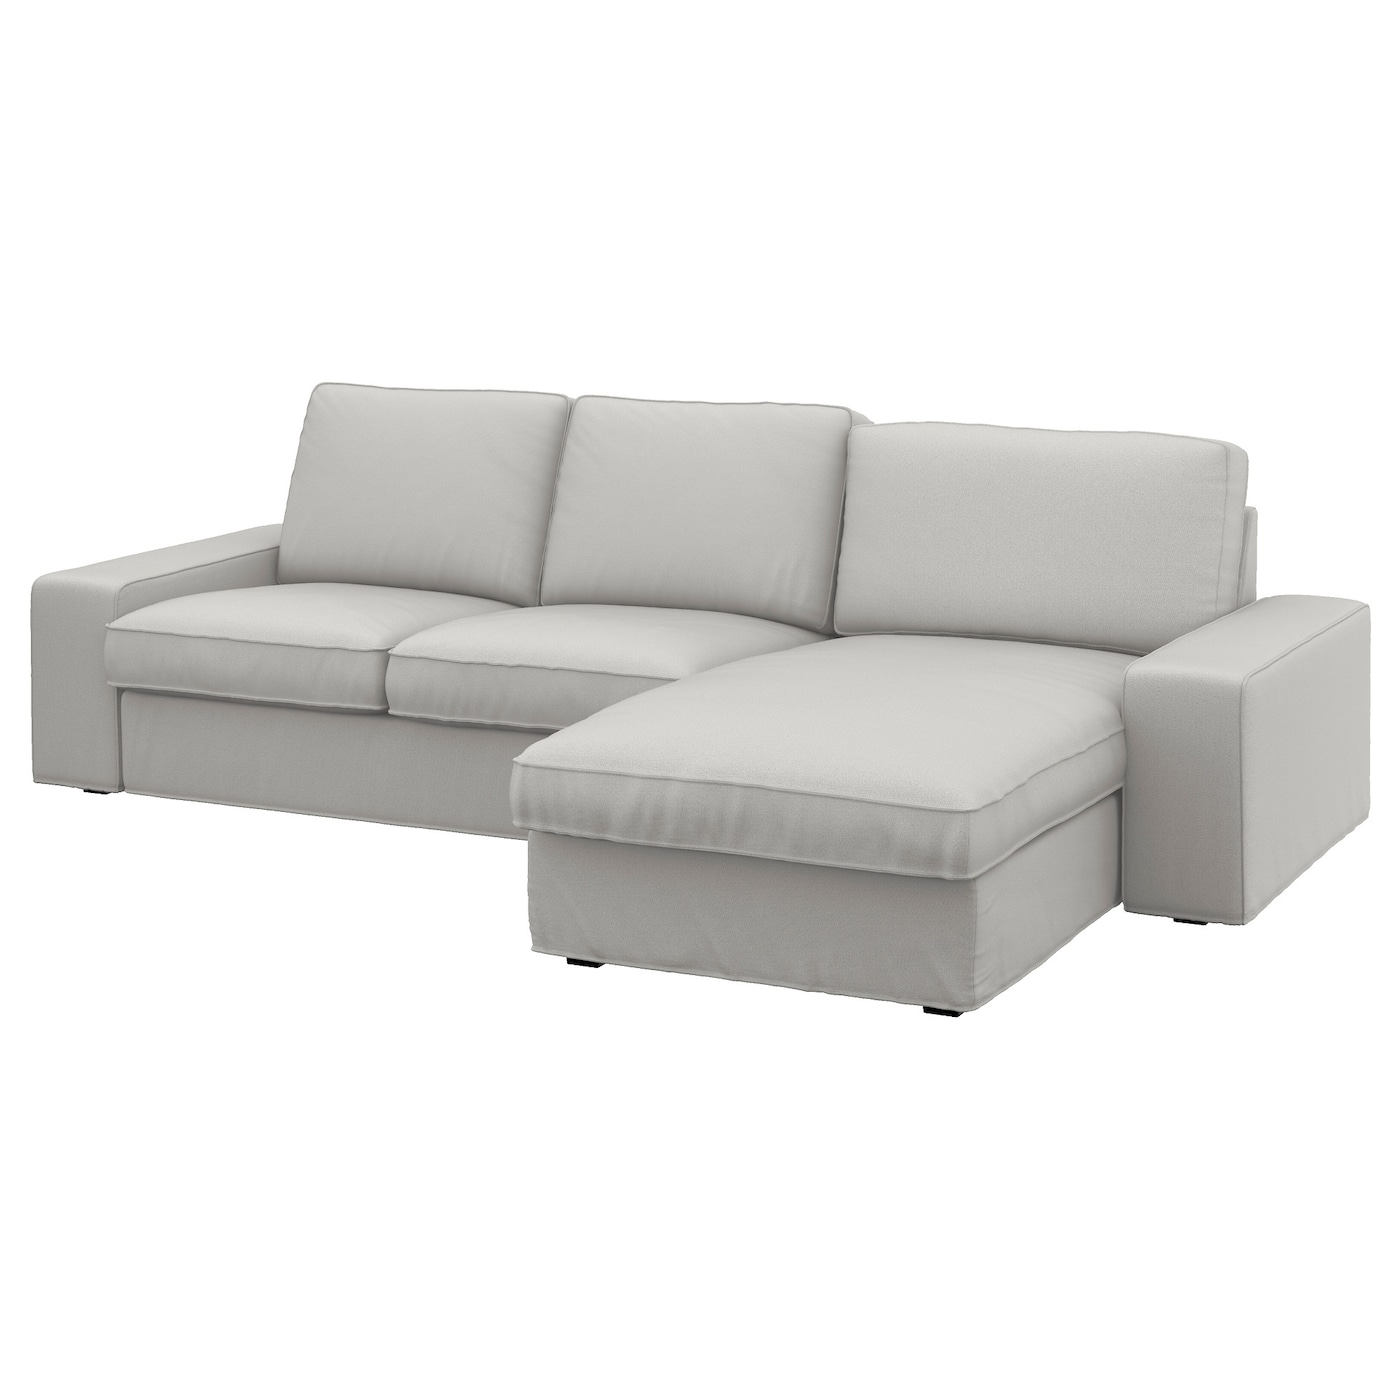 kivik two seat sofa and chaise longue ramna light grey ikea. Black Bedroom Furniture Sets. Home Design Ideas